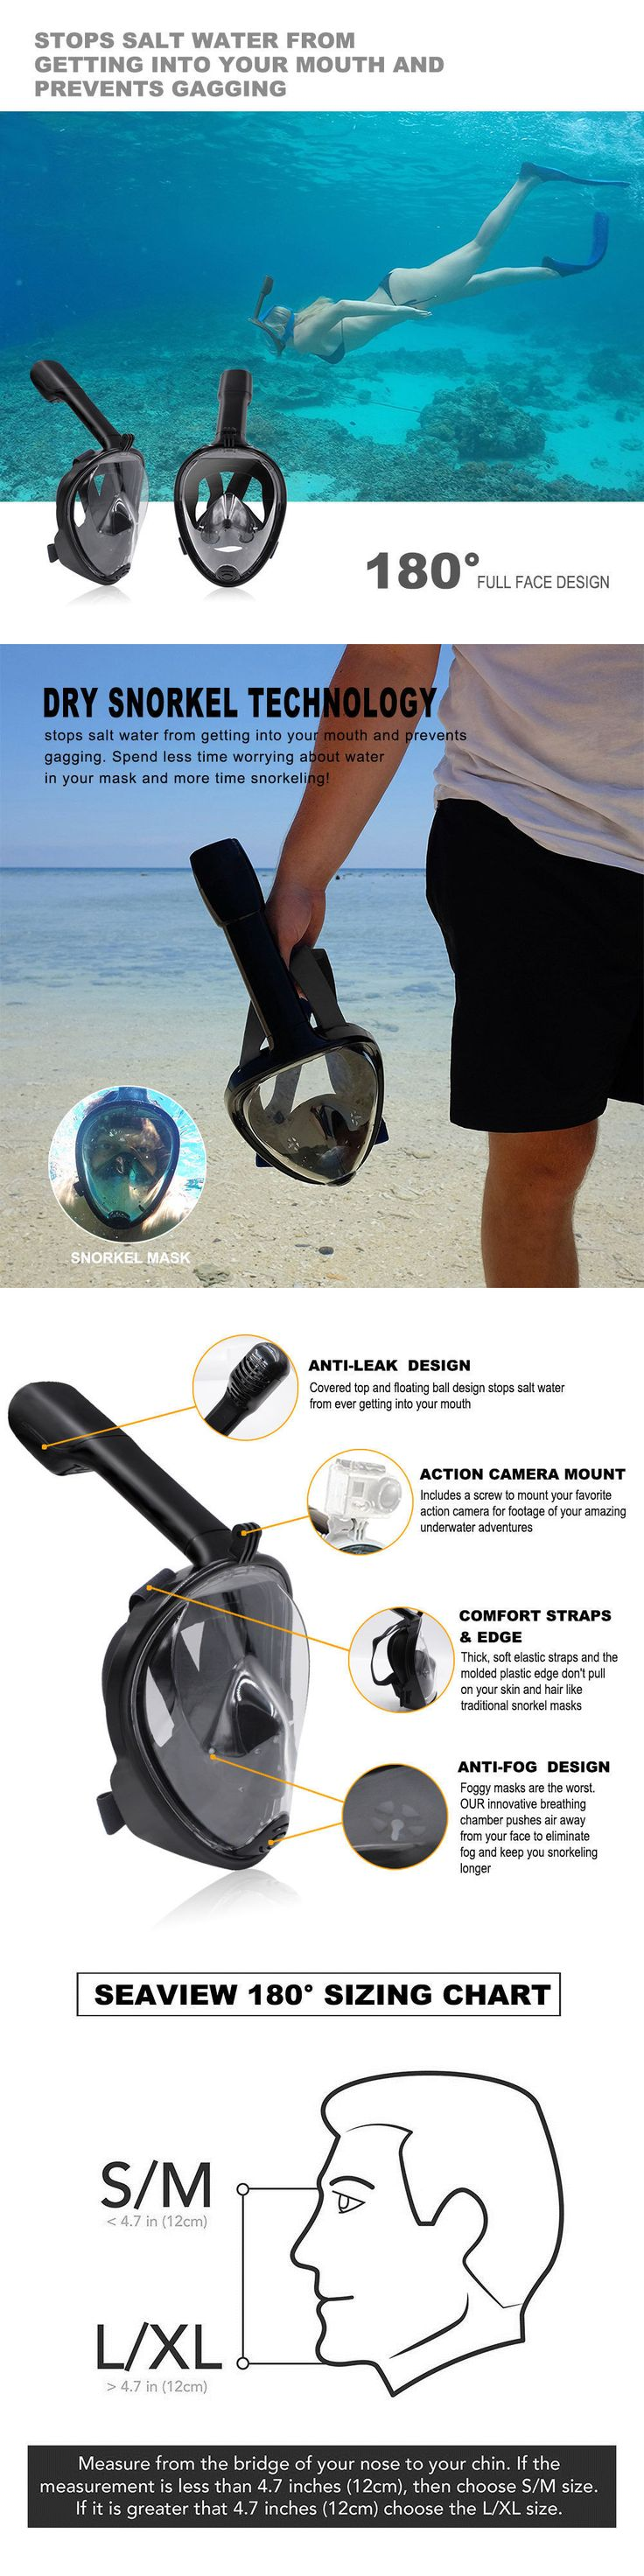 Masks 71161: Swimming Diving Breath Full Face Mask Surface Snorkel Scuba For Gopro L Xl S M -> BUY IT NOW ONLY: $30.99 on eBay!